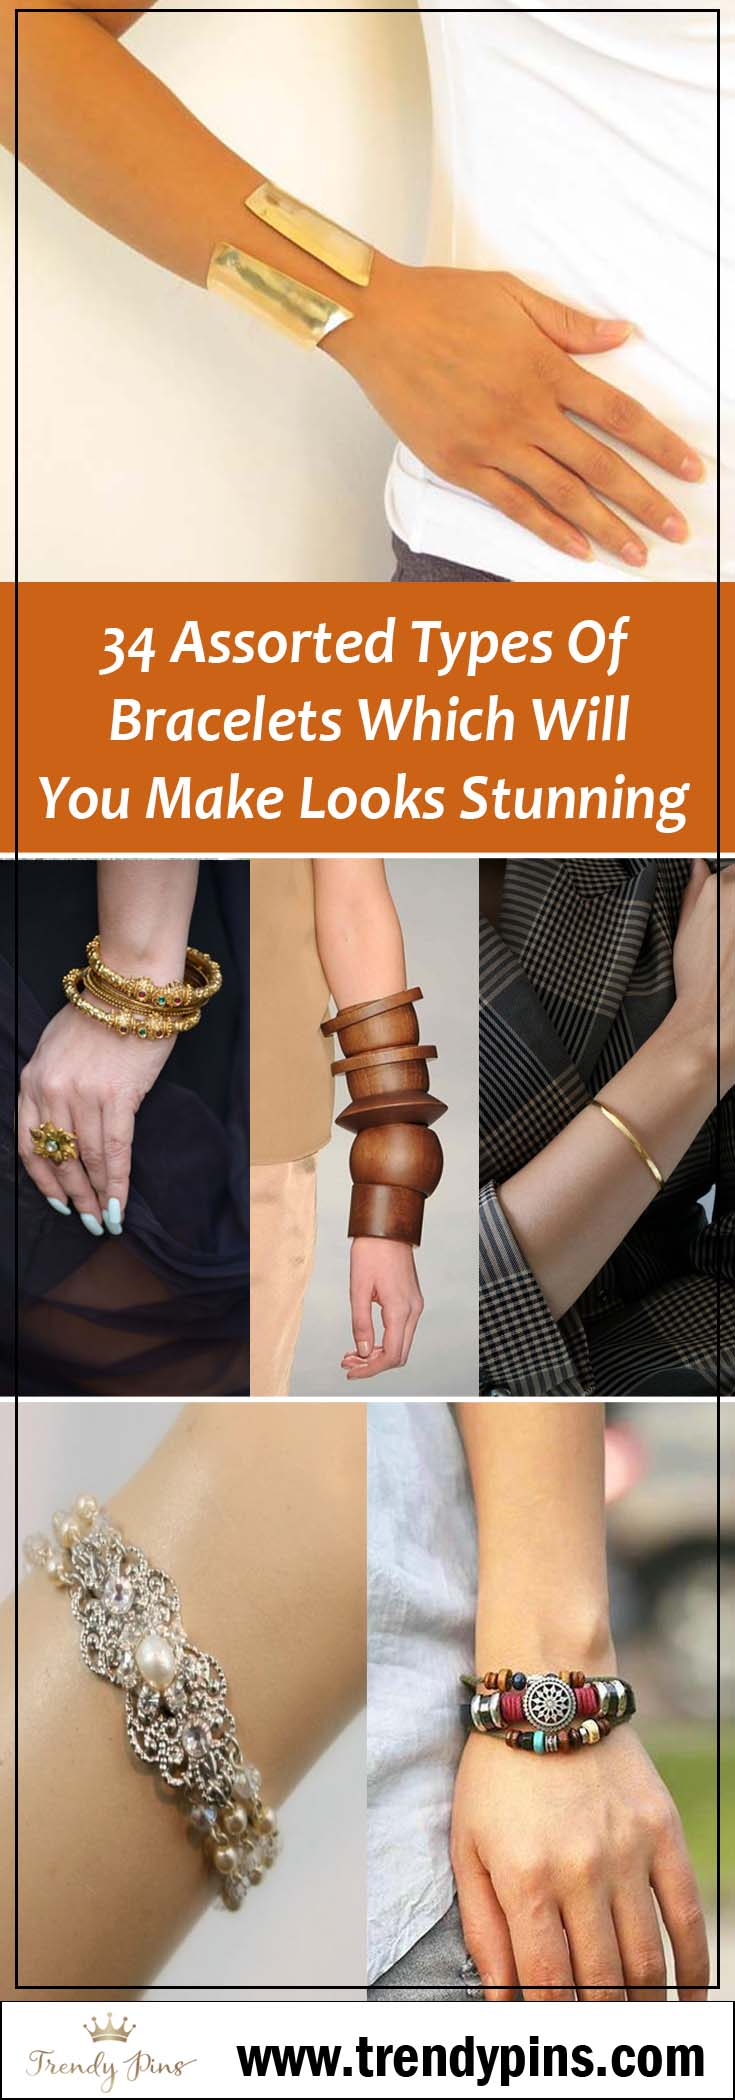 34 Assorted Types Of Bracelets Which Will You Make Looks Stunning